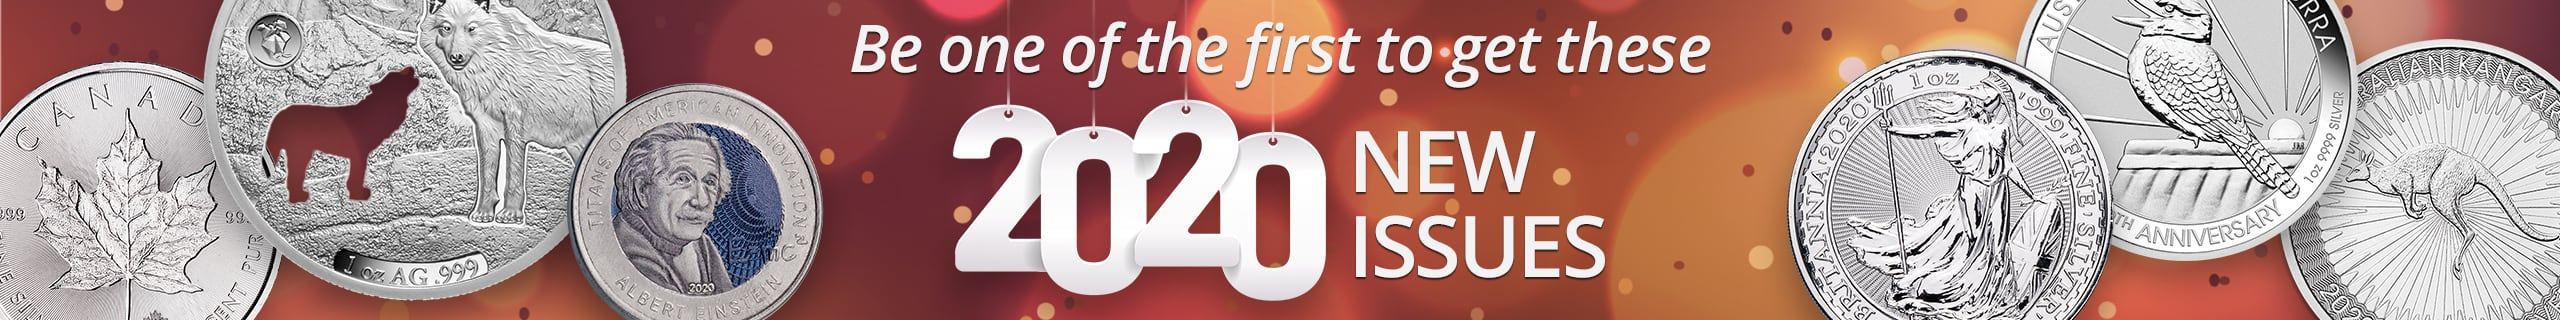 Be one of the first to get these 2020 New Issues!